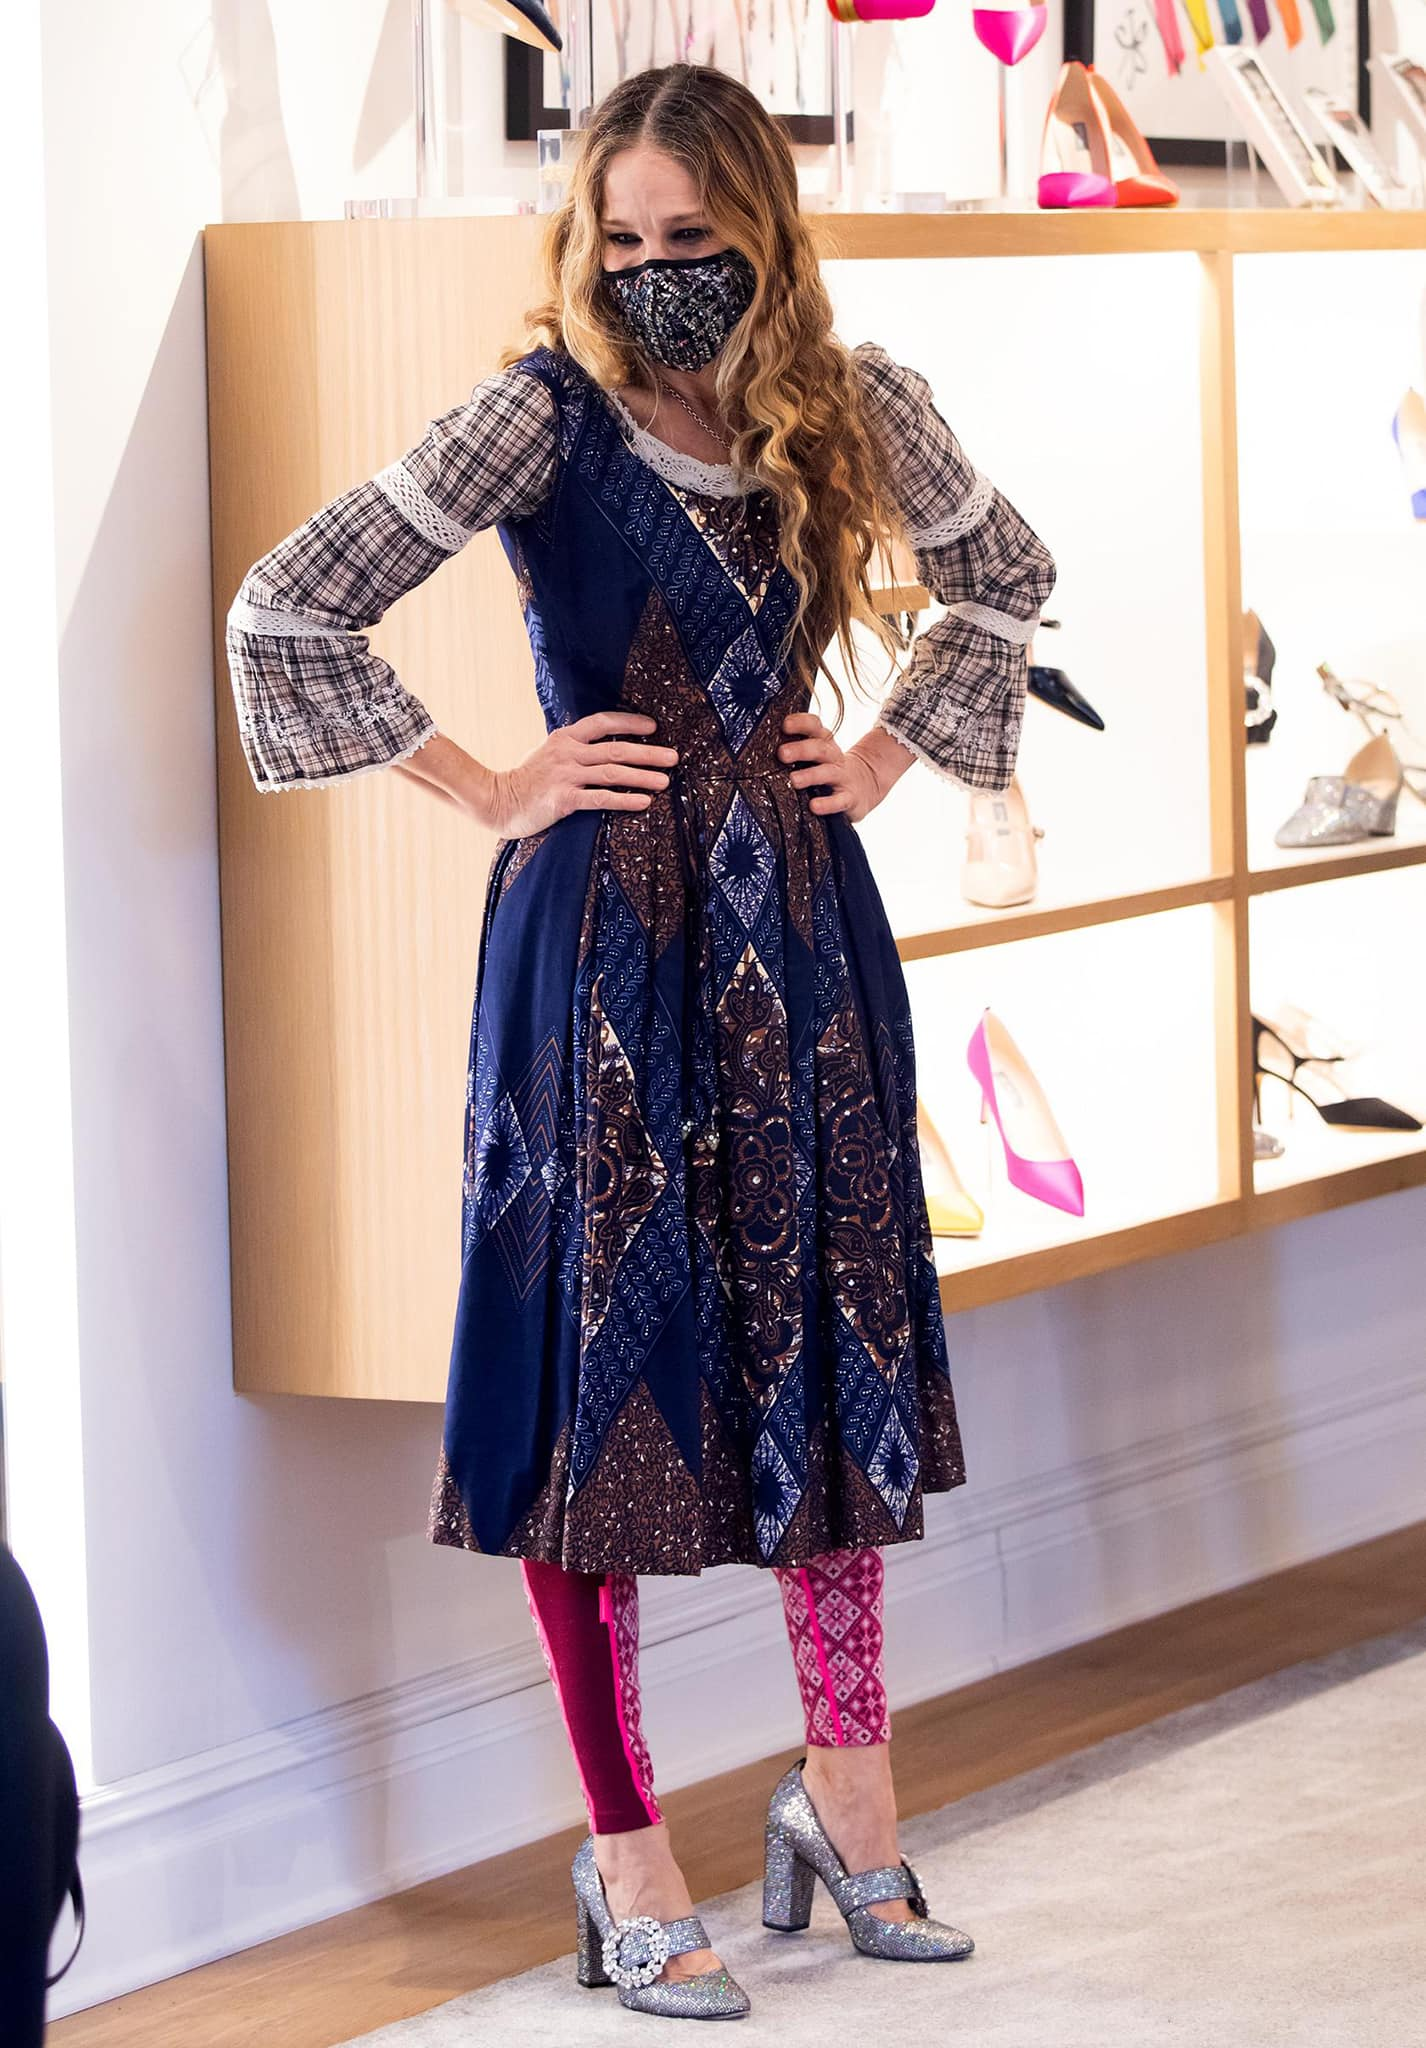 Underneath her coat, Sarah Jessica Parker wears a sleeveless paisley-printed dress with a prairie blouse and pink leggings